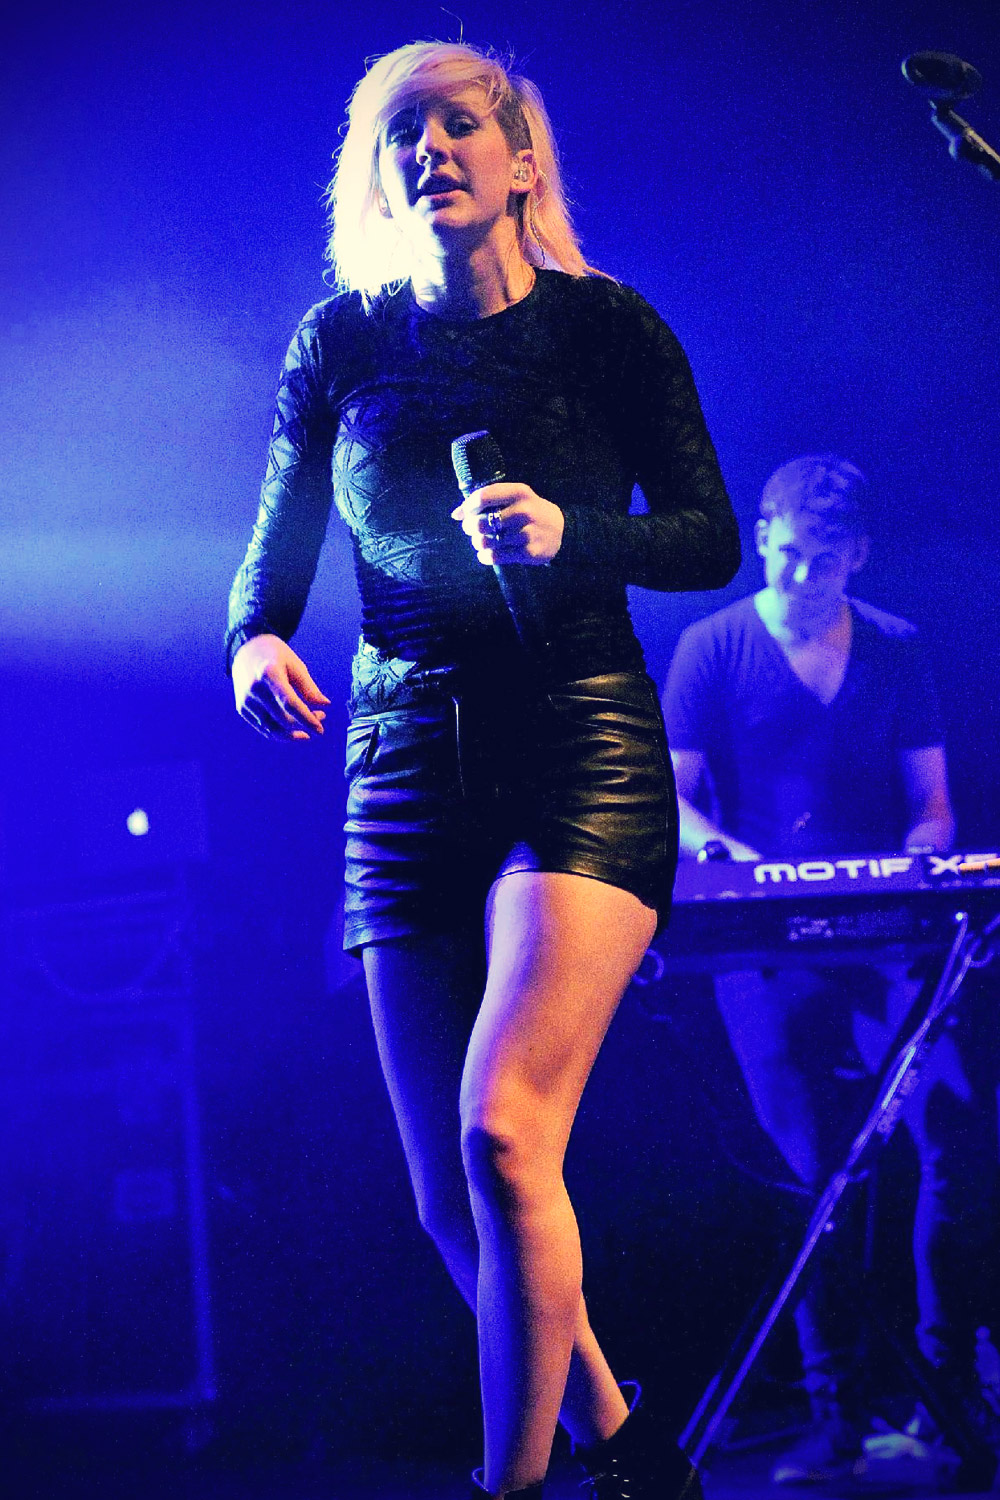 Ellie Goulding performing live at The Sound Academy Toronto